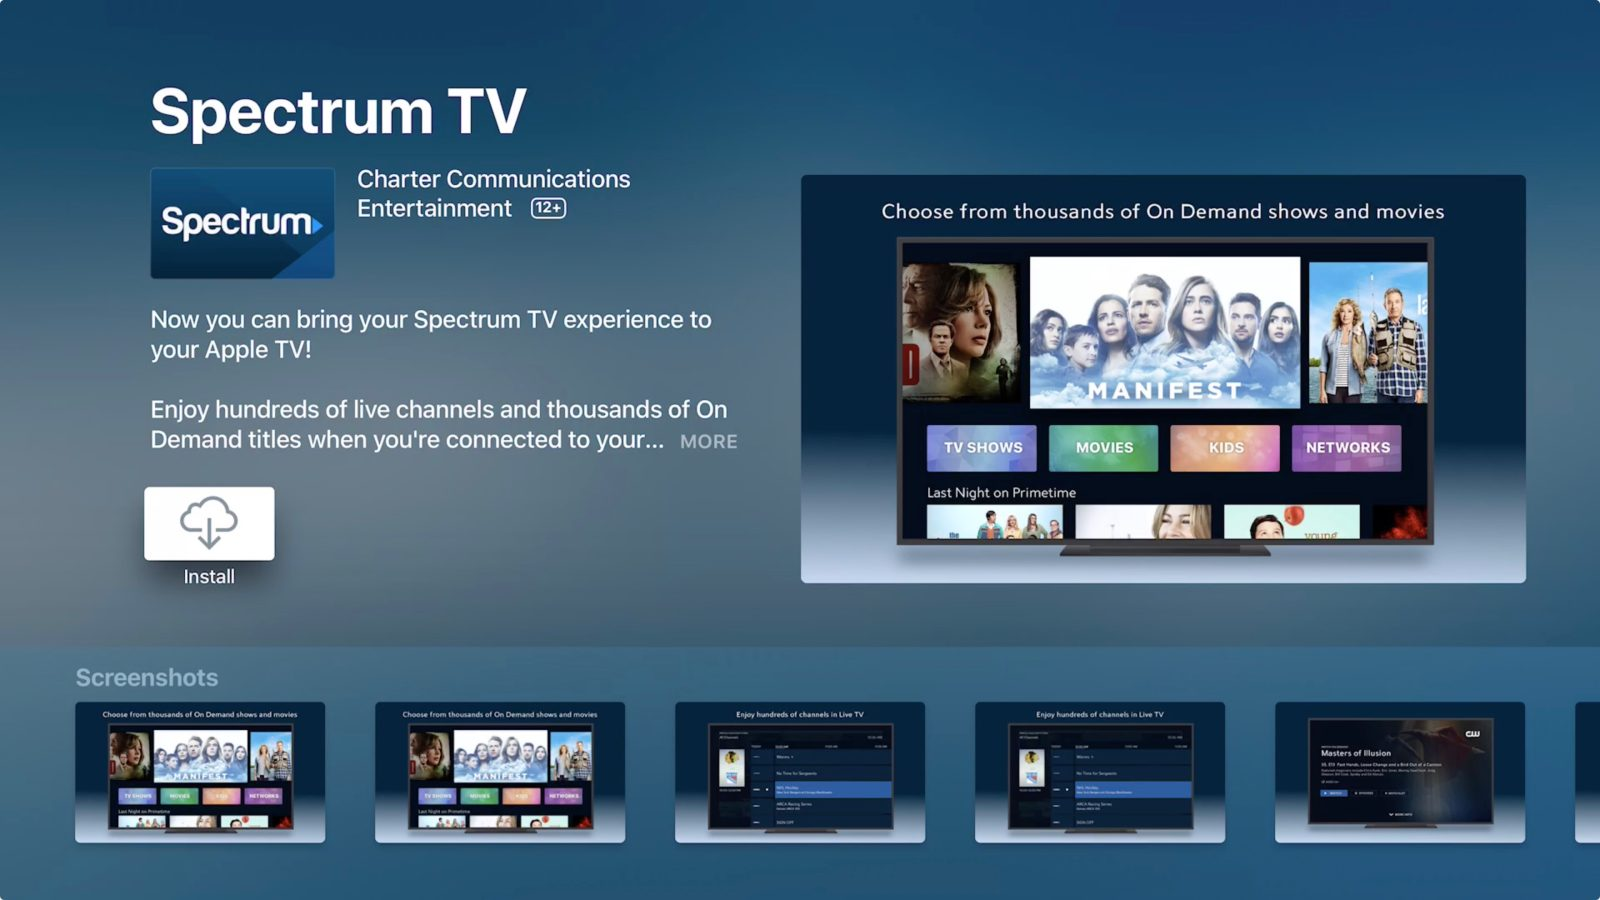 Spectrum TV app for Apple TV released, here's how to use it - 9to5Mac